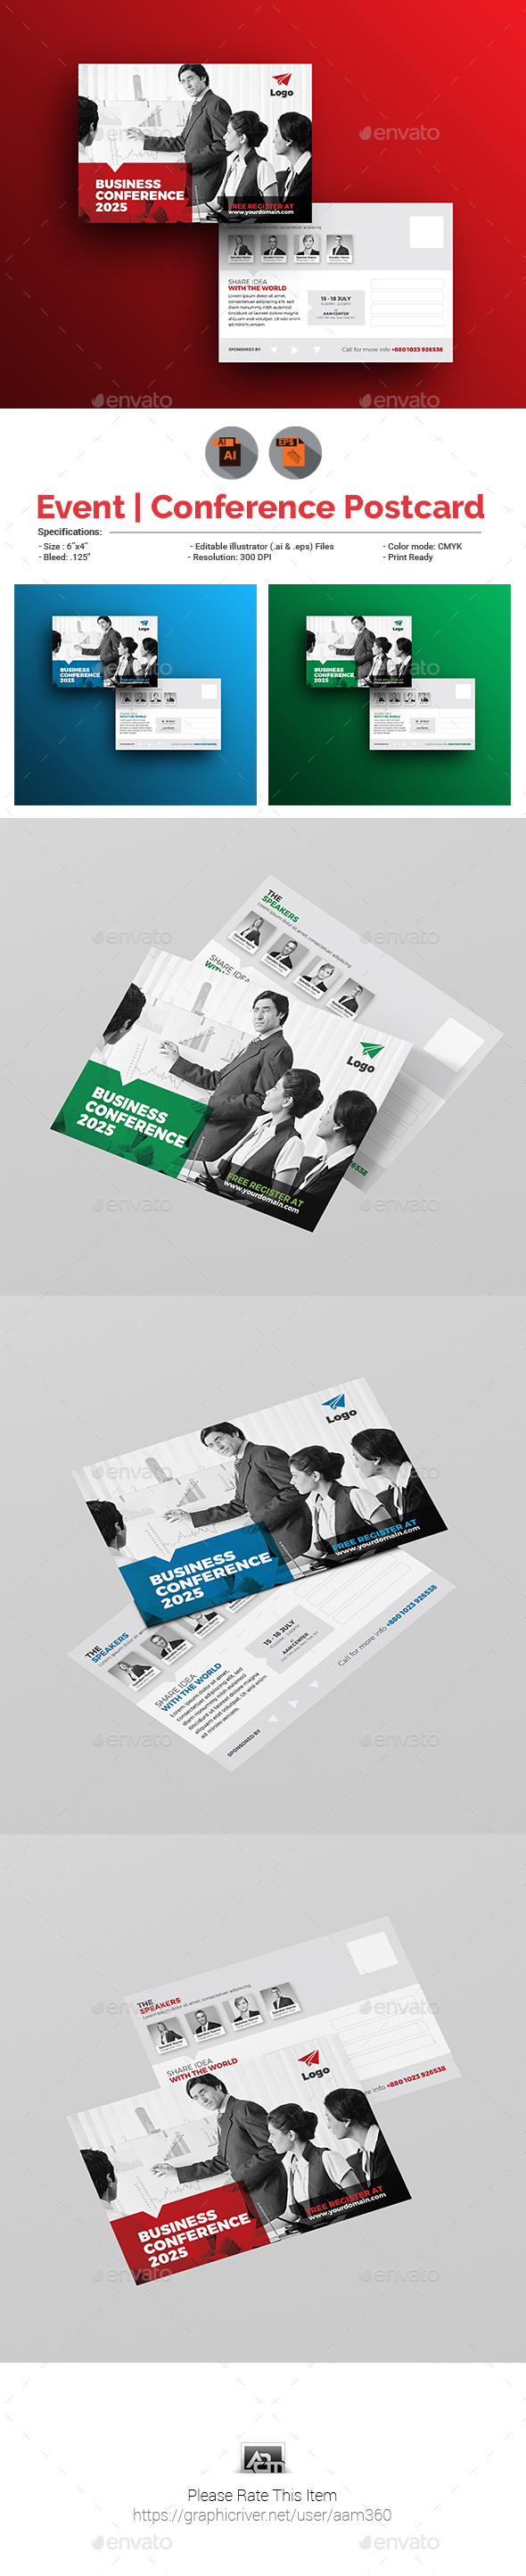 Conference / Event Postcard Template - Cards & Invites Print Templates